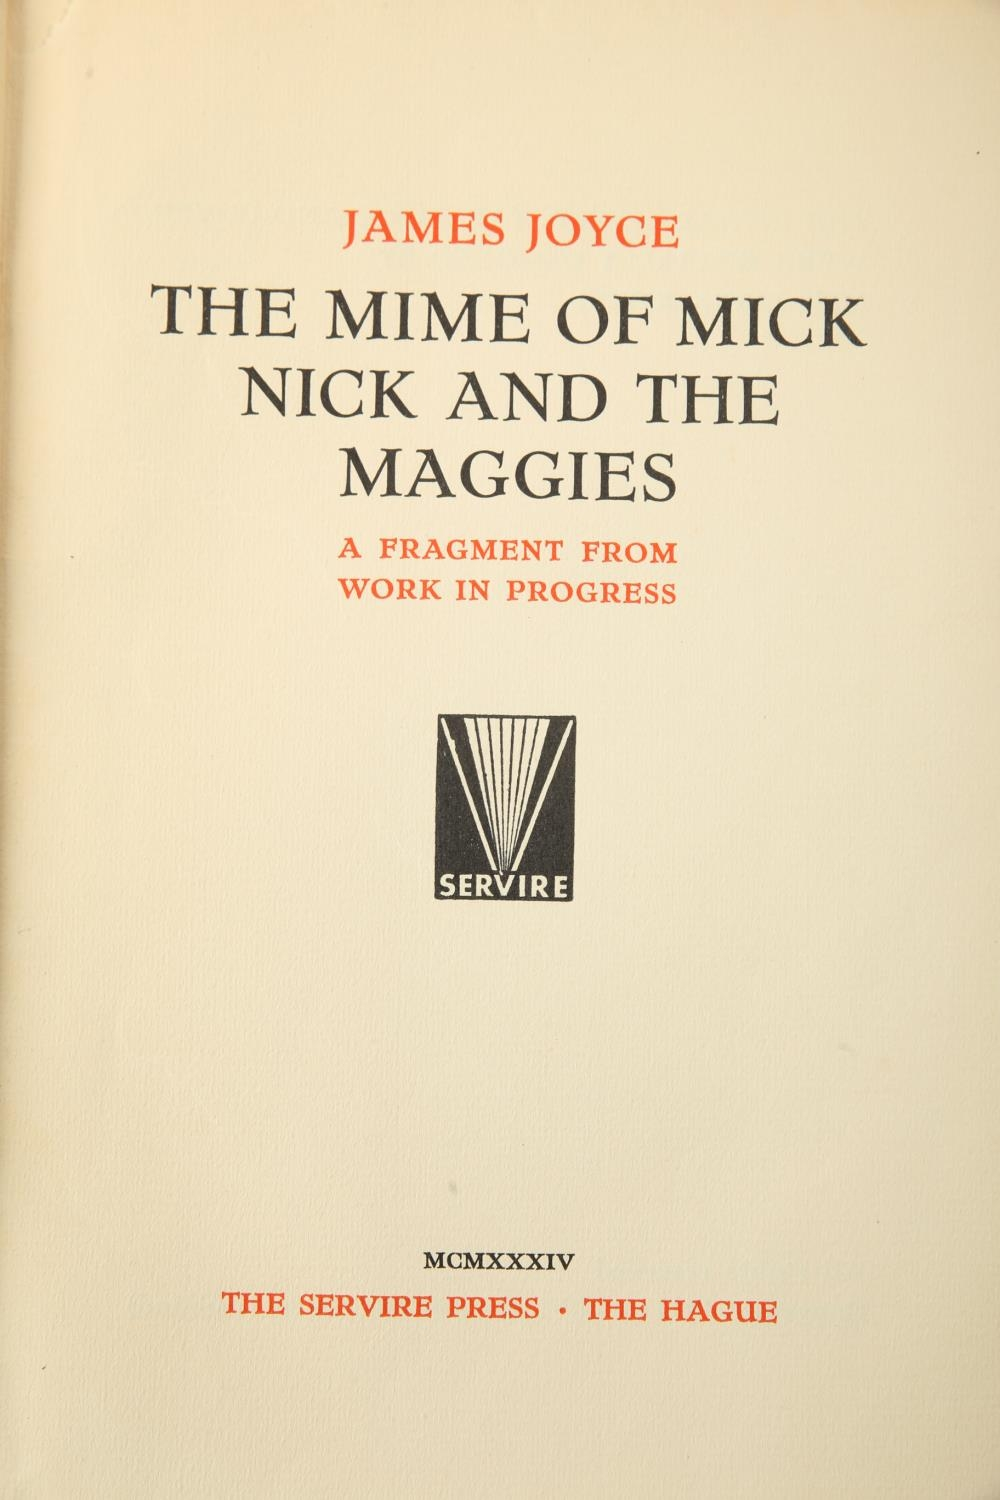 Joyce, James. The Mime of Mick, Nick and the Maggies. A Fragment from a Work in Progress. Servire - Image 2 of 3